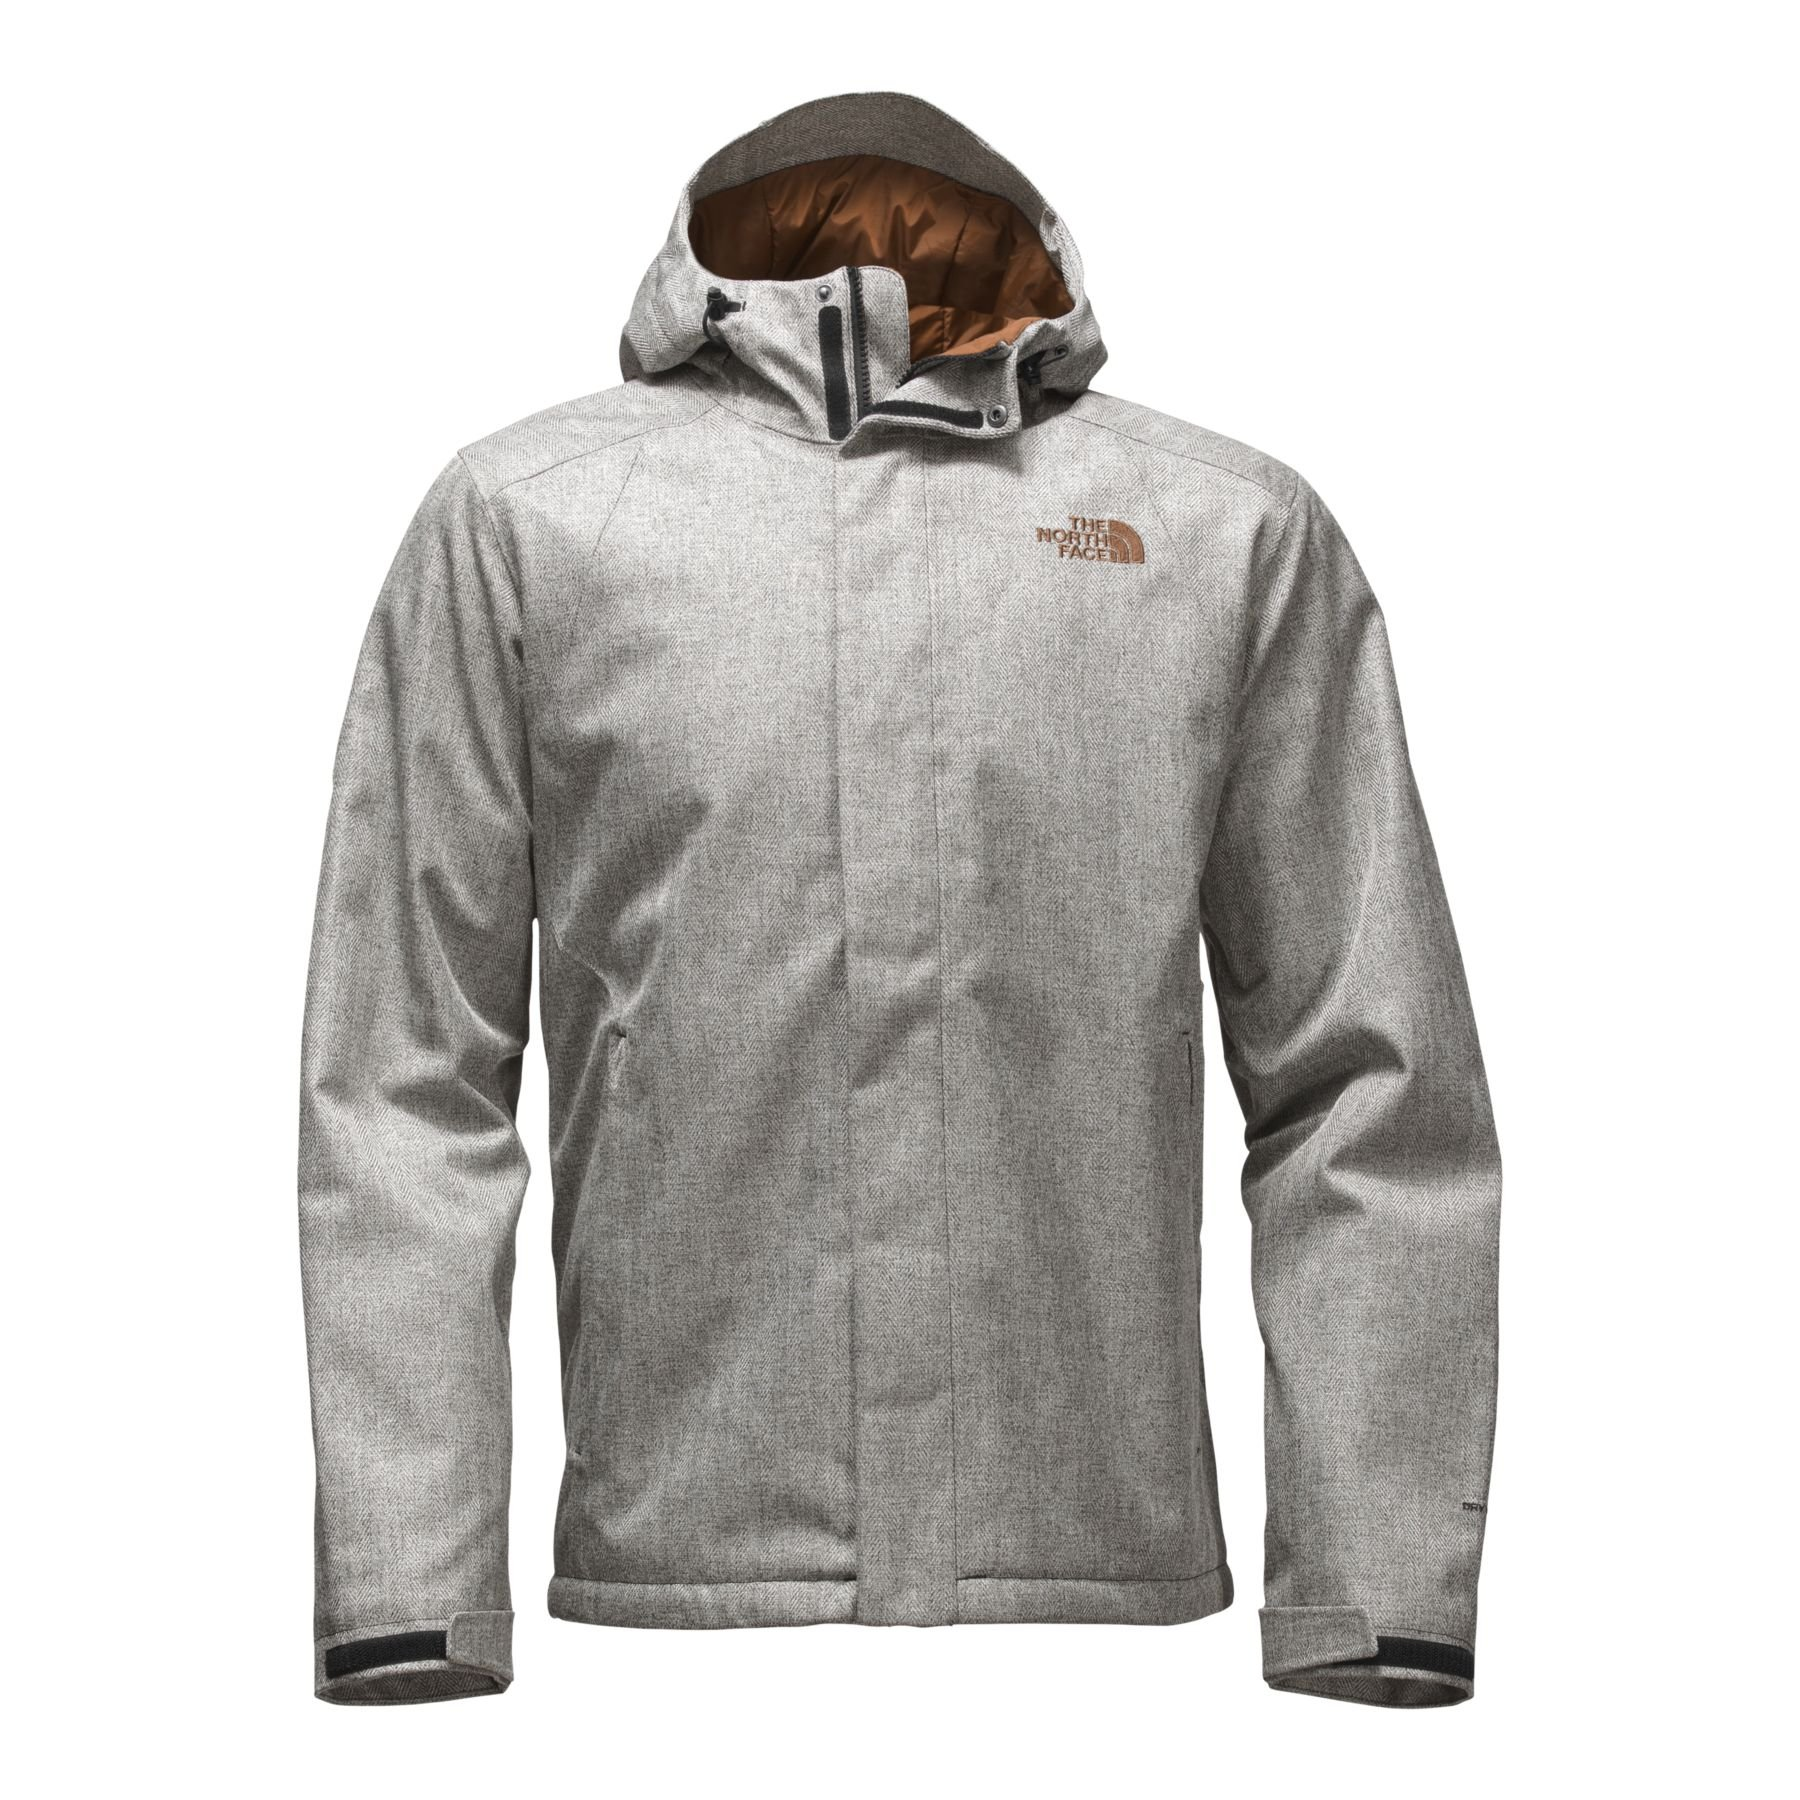 50f08c2043a68 Galleon - The North Face Men s Inlux Insulated Jacket - Monument Grey  Herringbone - L (Past Season)